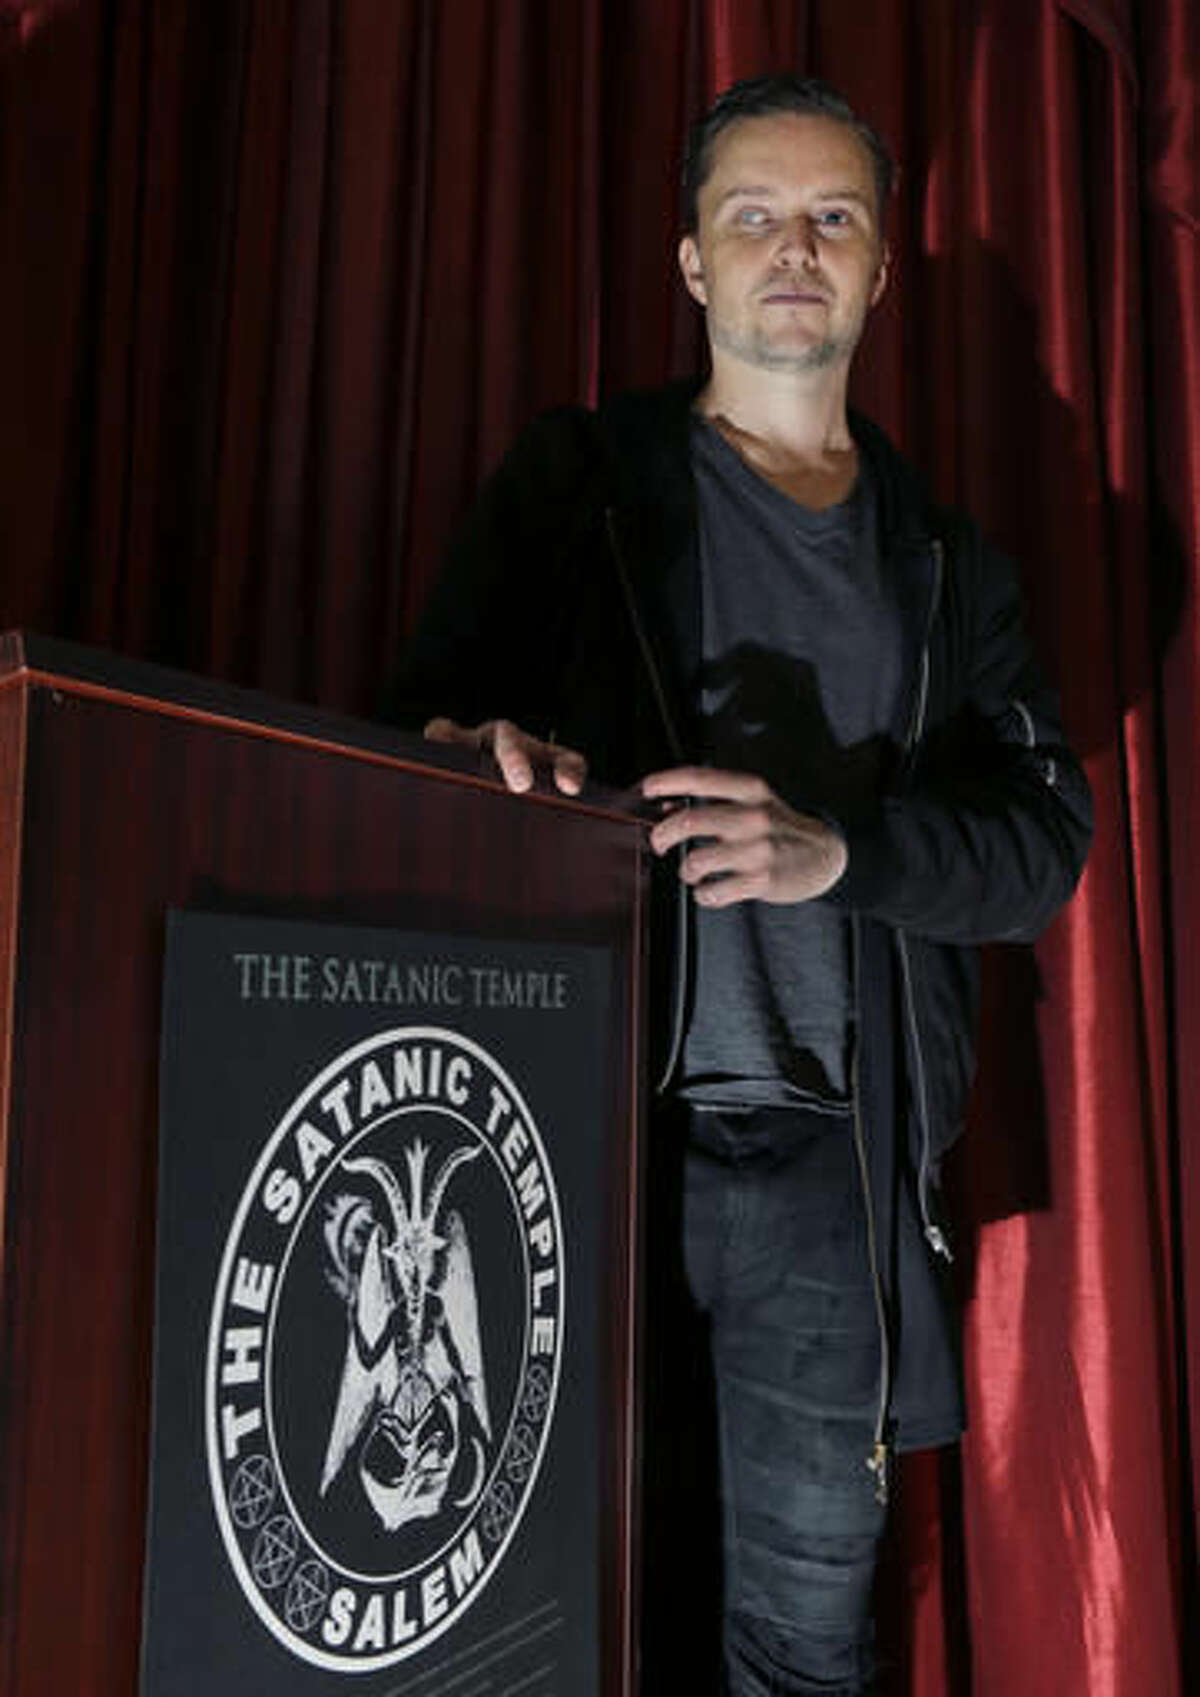 """In this Oct. 24, 2016 photo, Lucien Greaves stands inside the recently opened international headquarters of the Satanic Temple in Salem, Mass. The Satanic Temple is waging religious battles along a variety of fronts nationwide, and its co-founder says it's just getting started. Greaves says the temple hopes to ensure Satanists """"have a place in the world"""" and that """"evangelical theocrats"""" don't monopolize the religious freedom debate. (AP Photo/Elise Amendola)"""